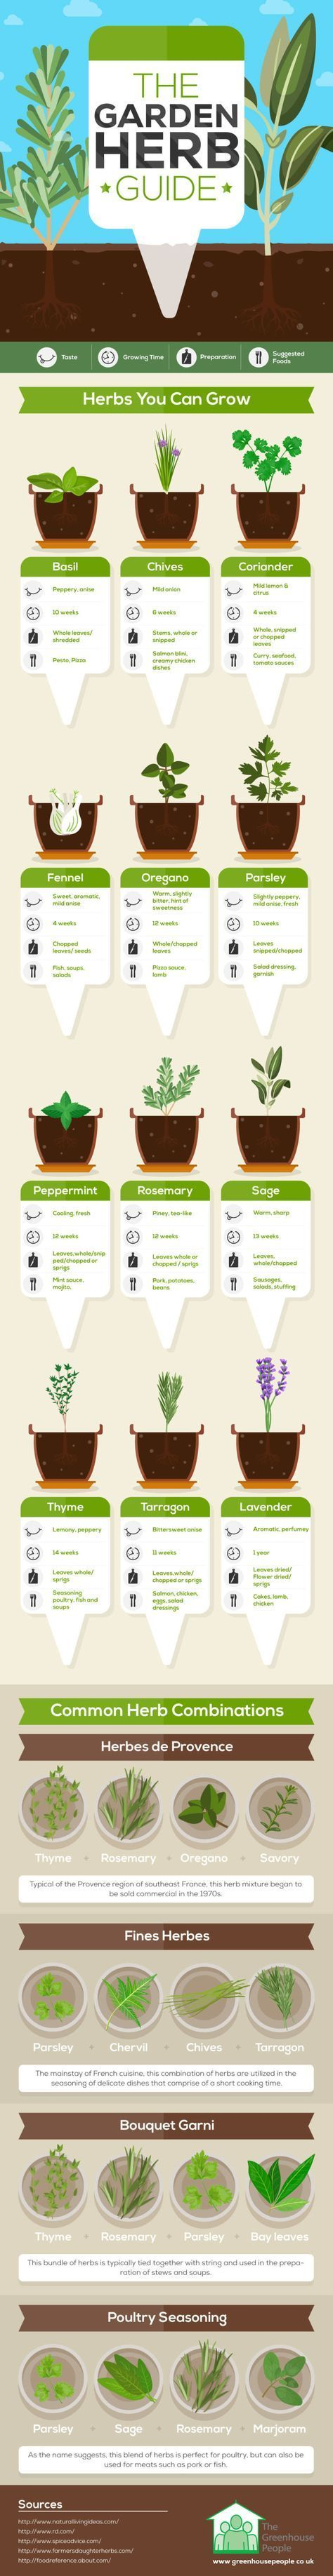 One Infographic Will Change Your Homegrown Herb Game This One Infographic Will Change Your Homegrown Herb Game  - This One Infographic Will Change Your Homegrown Herb Game  -